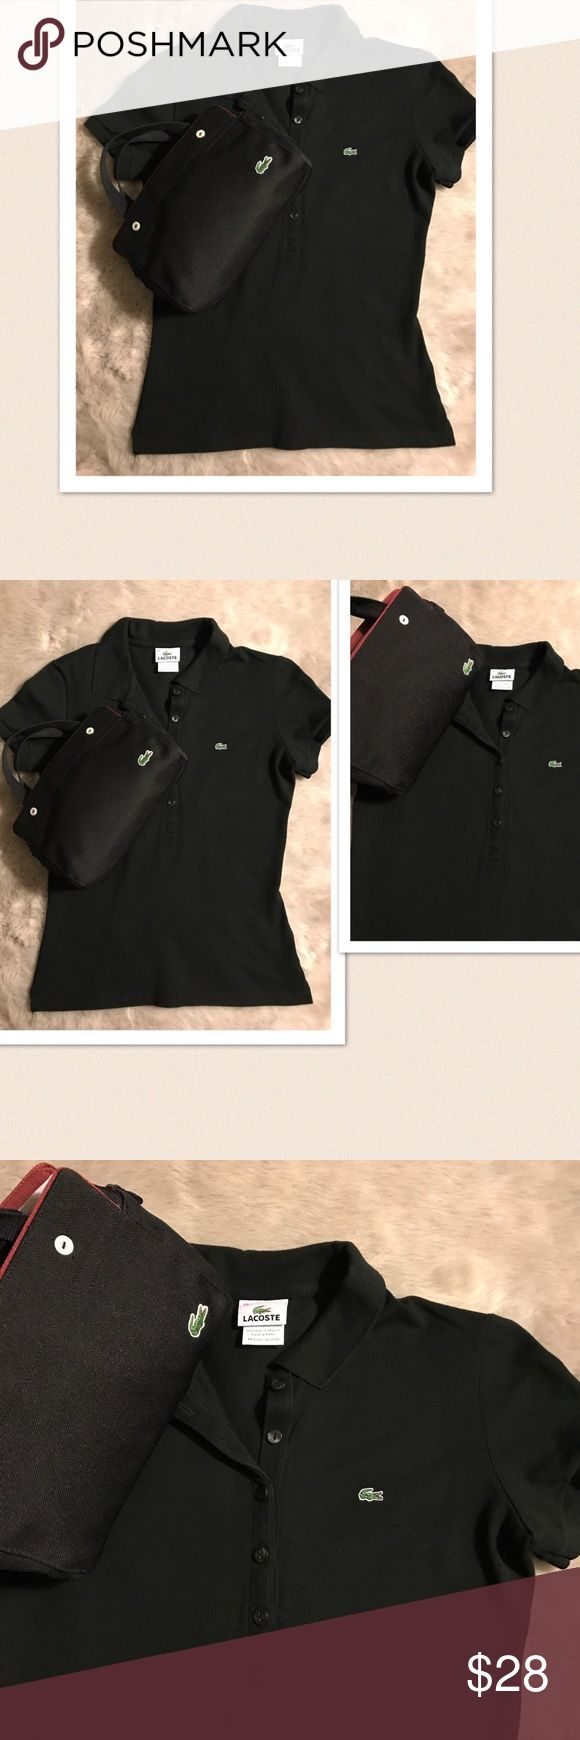 "🆕 Women's Lacoste Polo 🆕 Women's Lacoste Polo. Lacoste Handbag is available for sale. You will receive this Lacoste Polo shirt. Size: 40. Pit- pit: 17.5"", Length: 23"". Material: 94% cotton 6% elastase. Color: Black. Store display model. New without tag. Lacoste Tops"